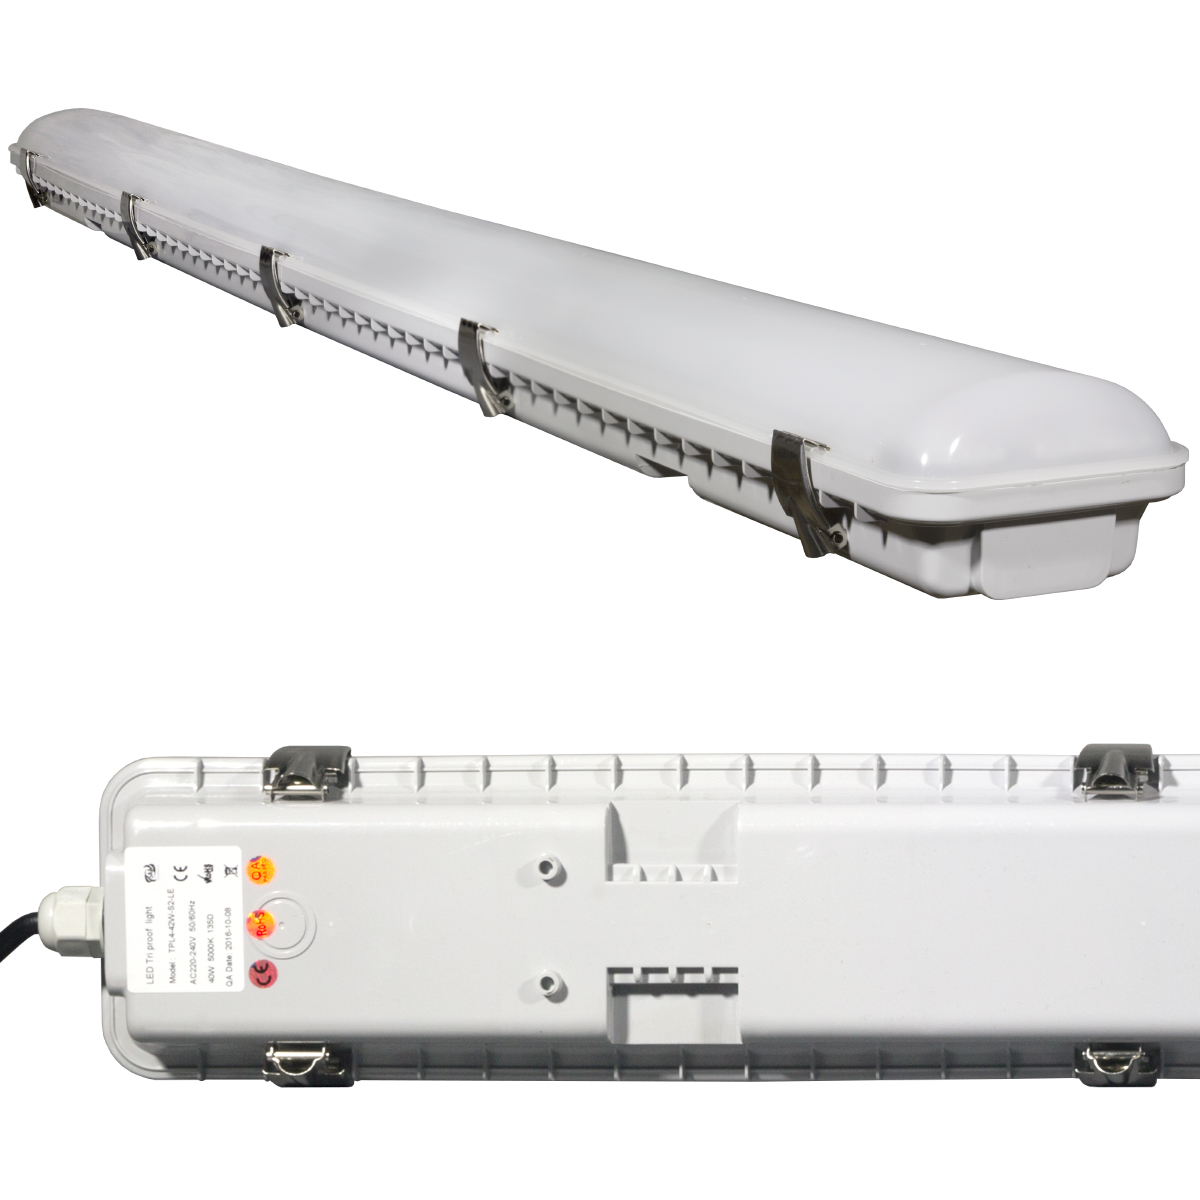 LED Waterproof Batten Lights – Model WB